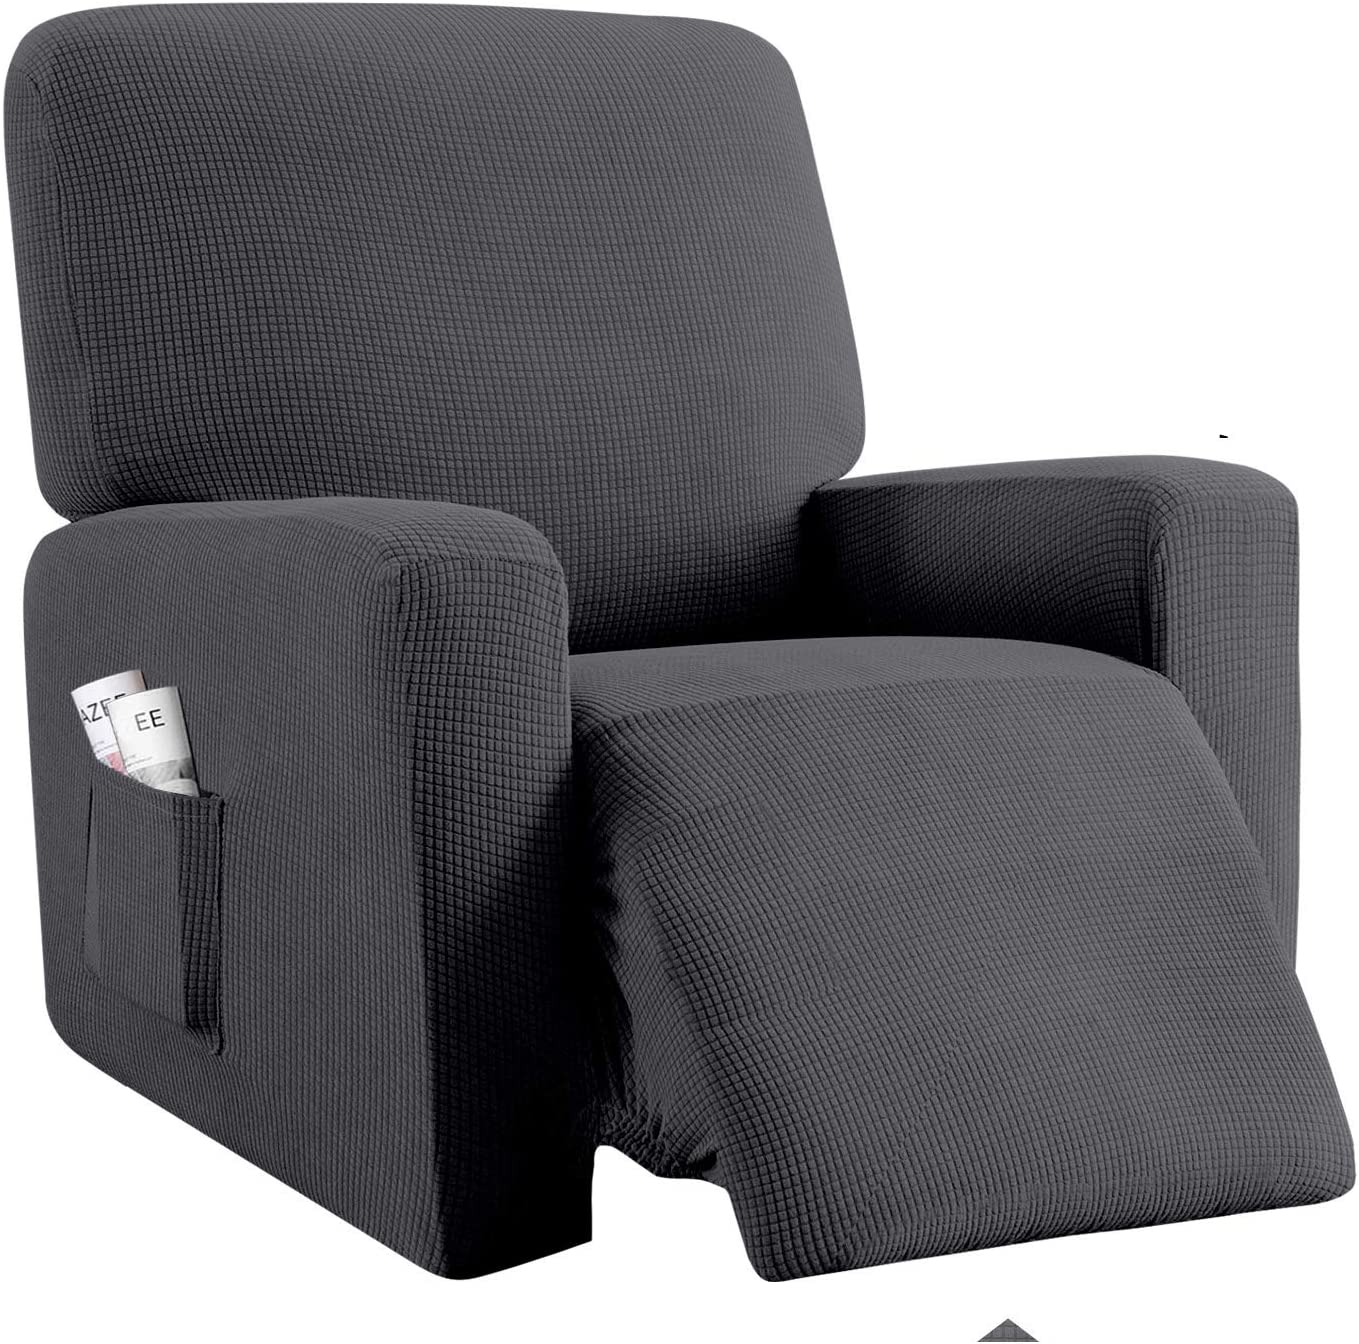 Pepibear Water 2021 new Popular products Repellent Recliner Chair Upgraded Cover